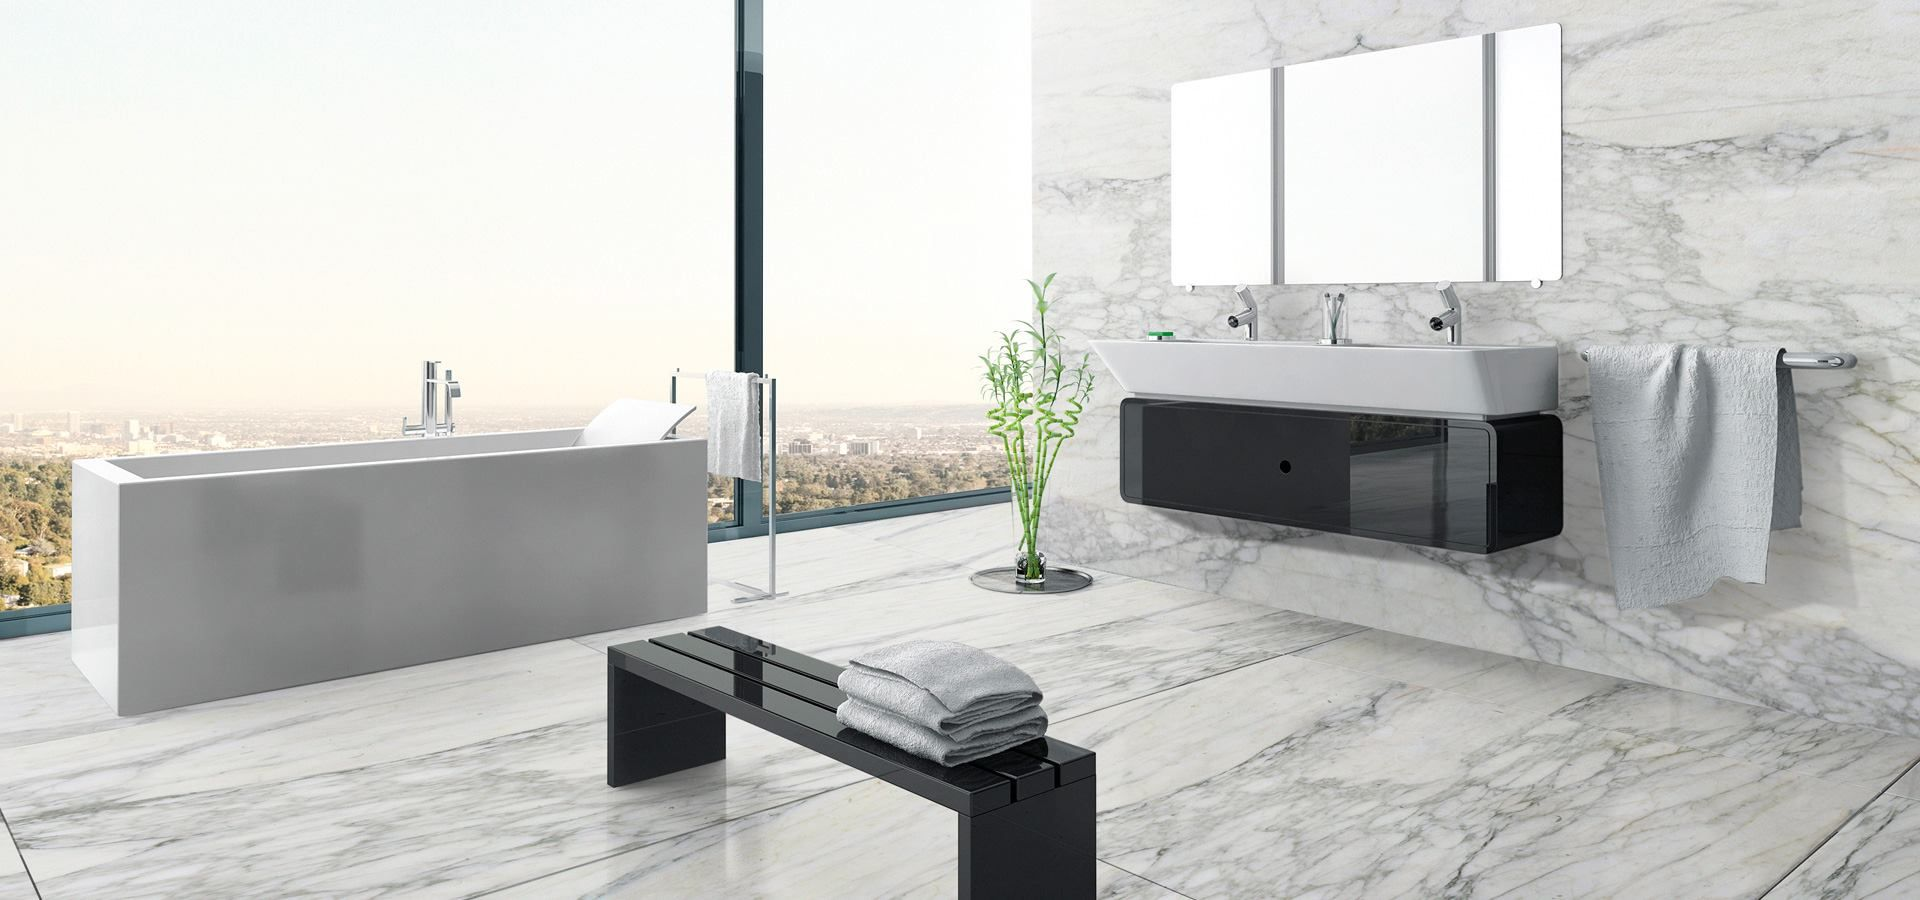 Two words Marble. Masterpiece. This bathroom is covered